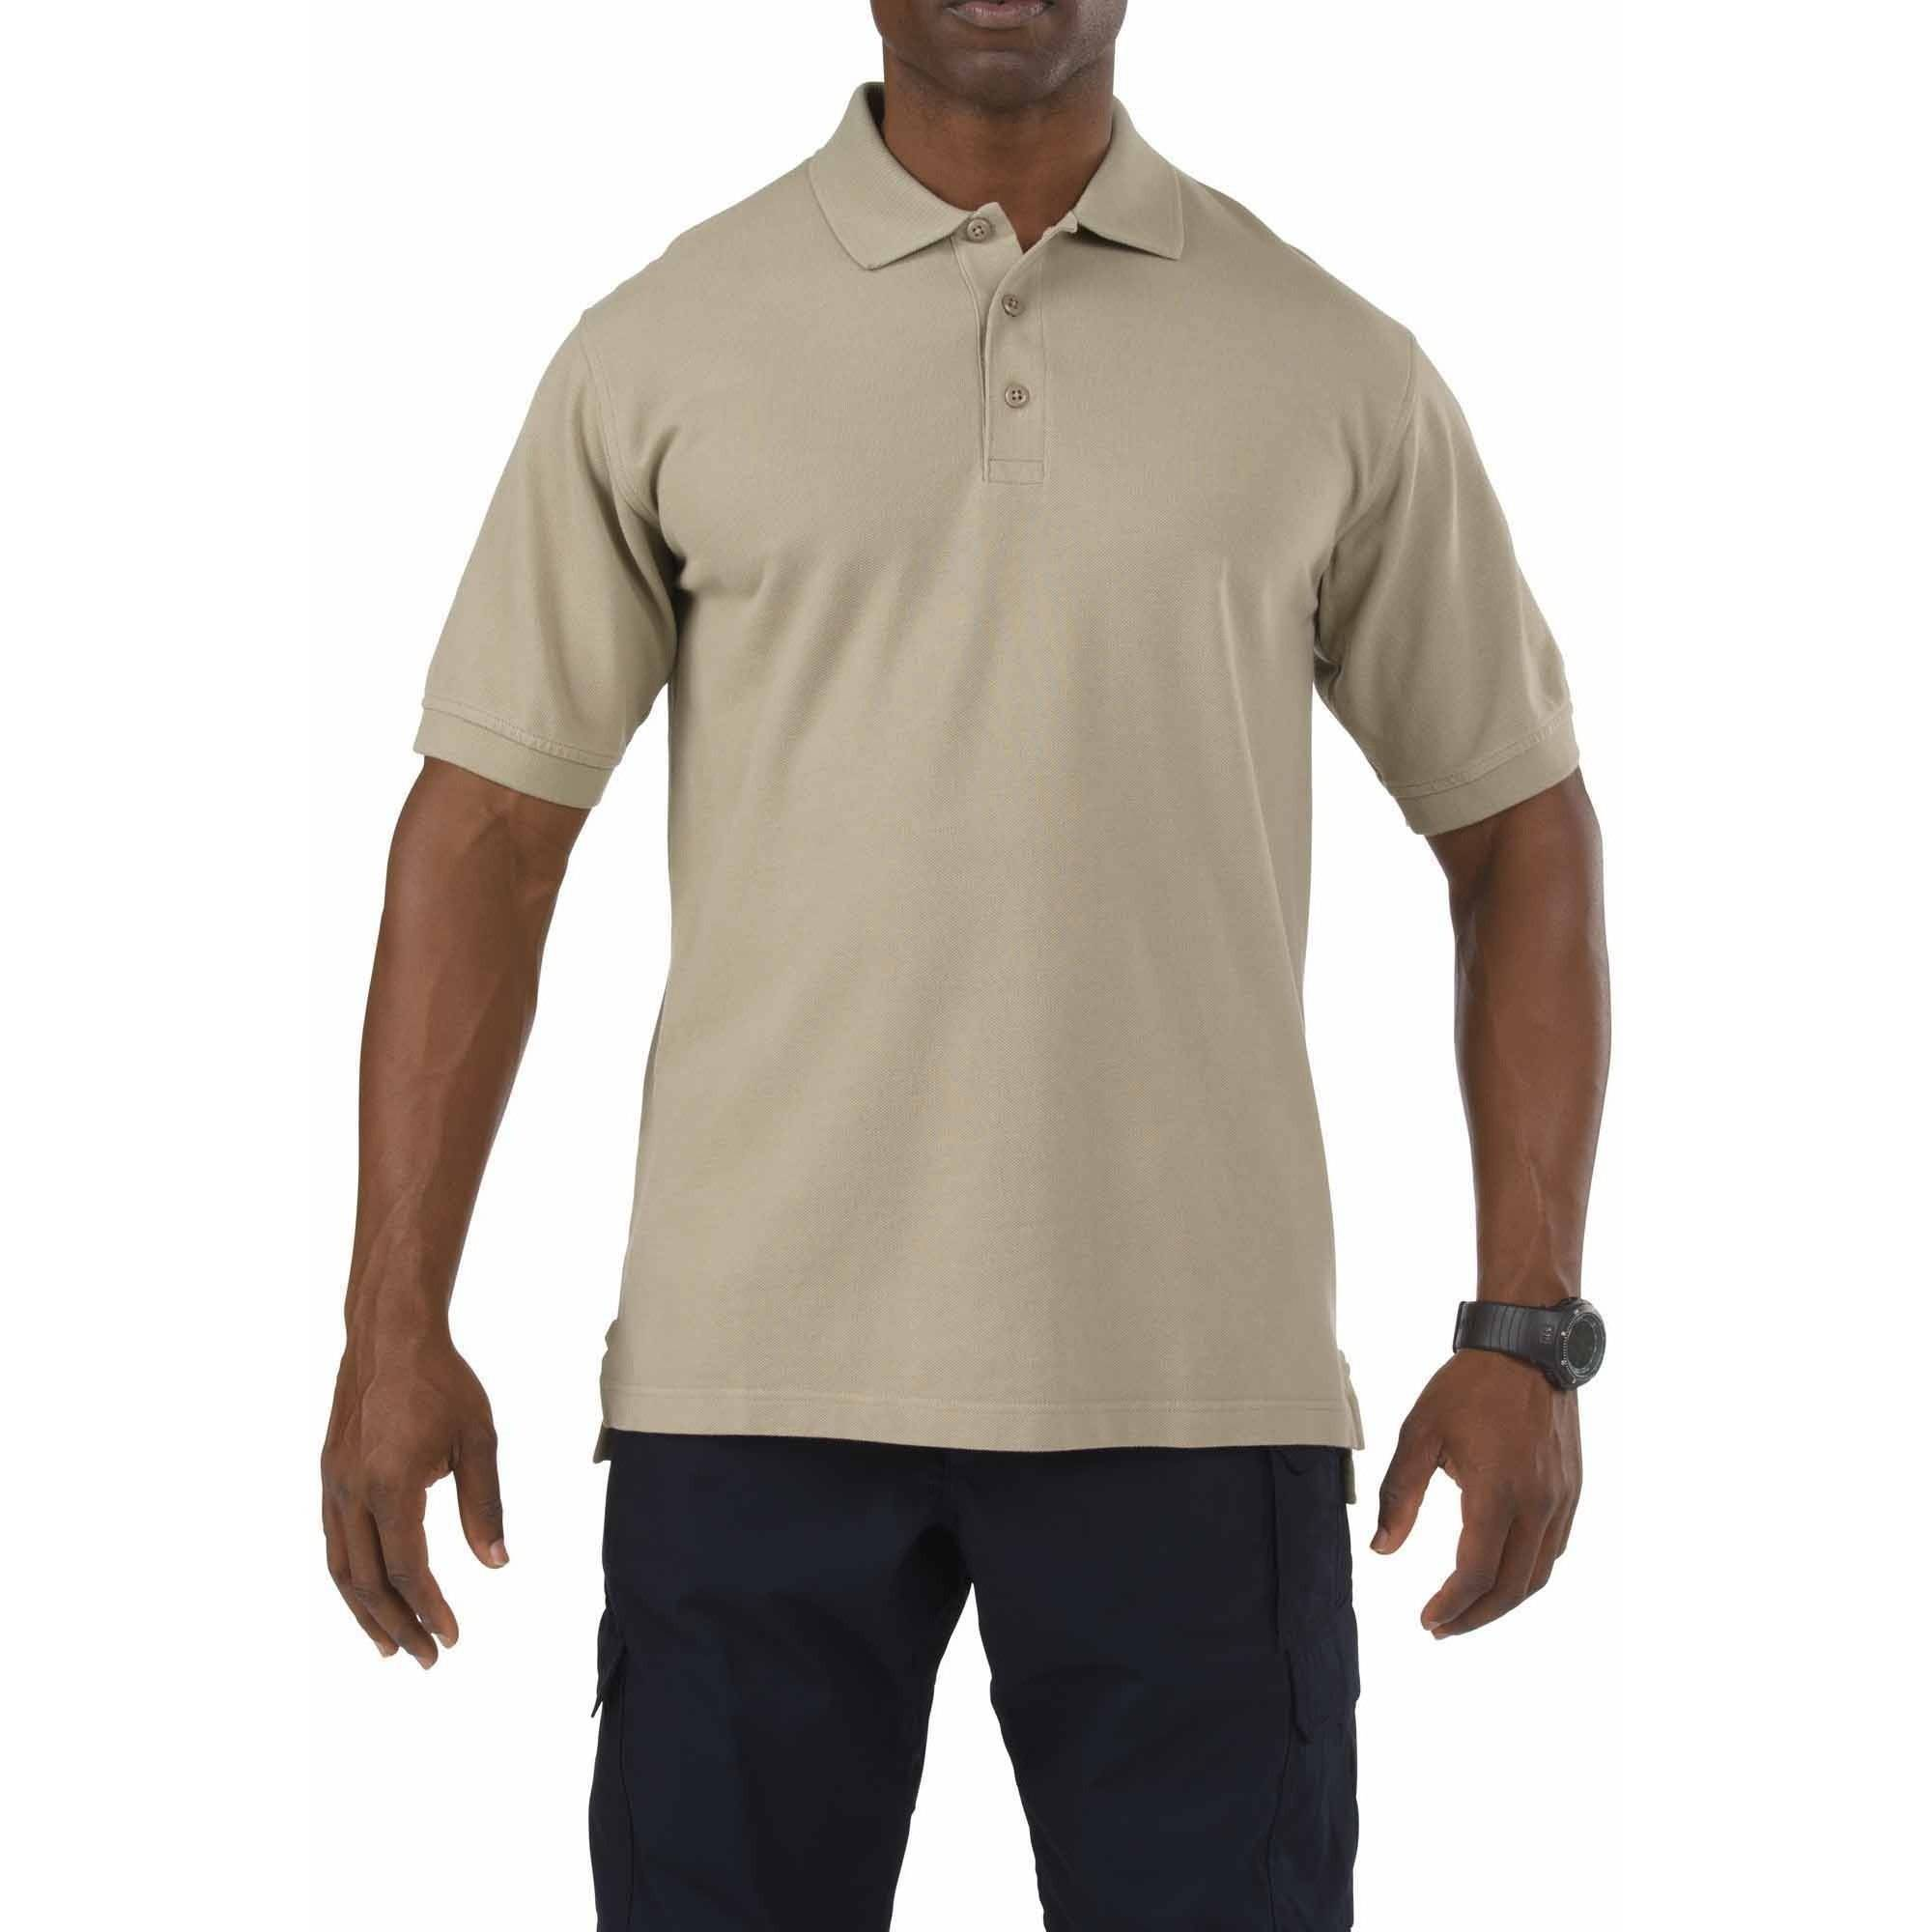 Short Sleeve Professional Polo Shirt, Silver Tan